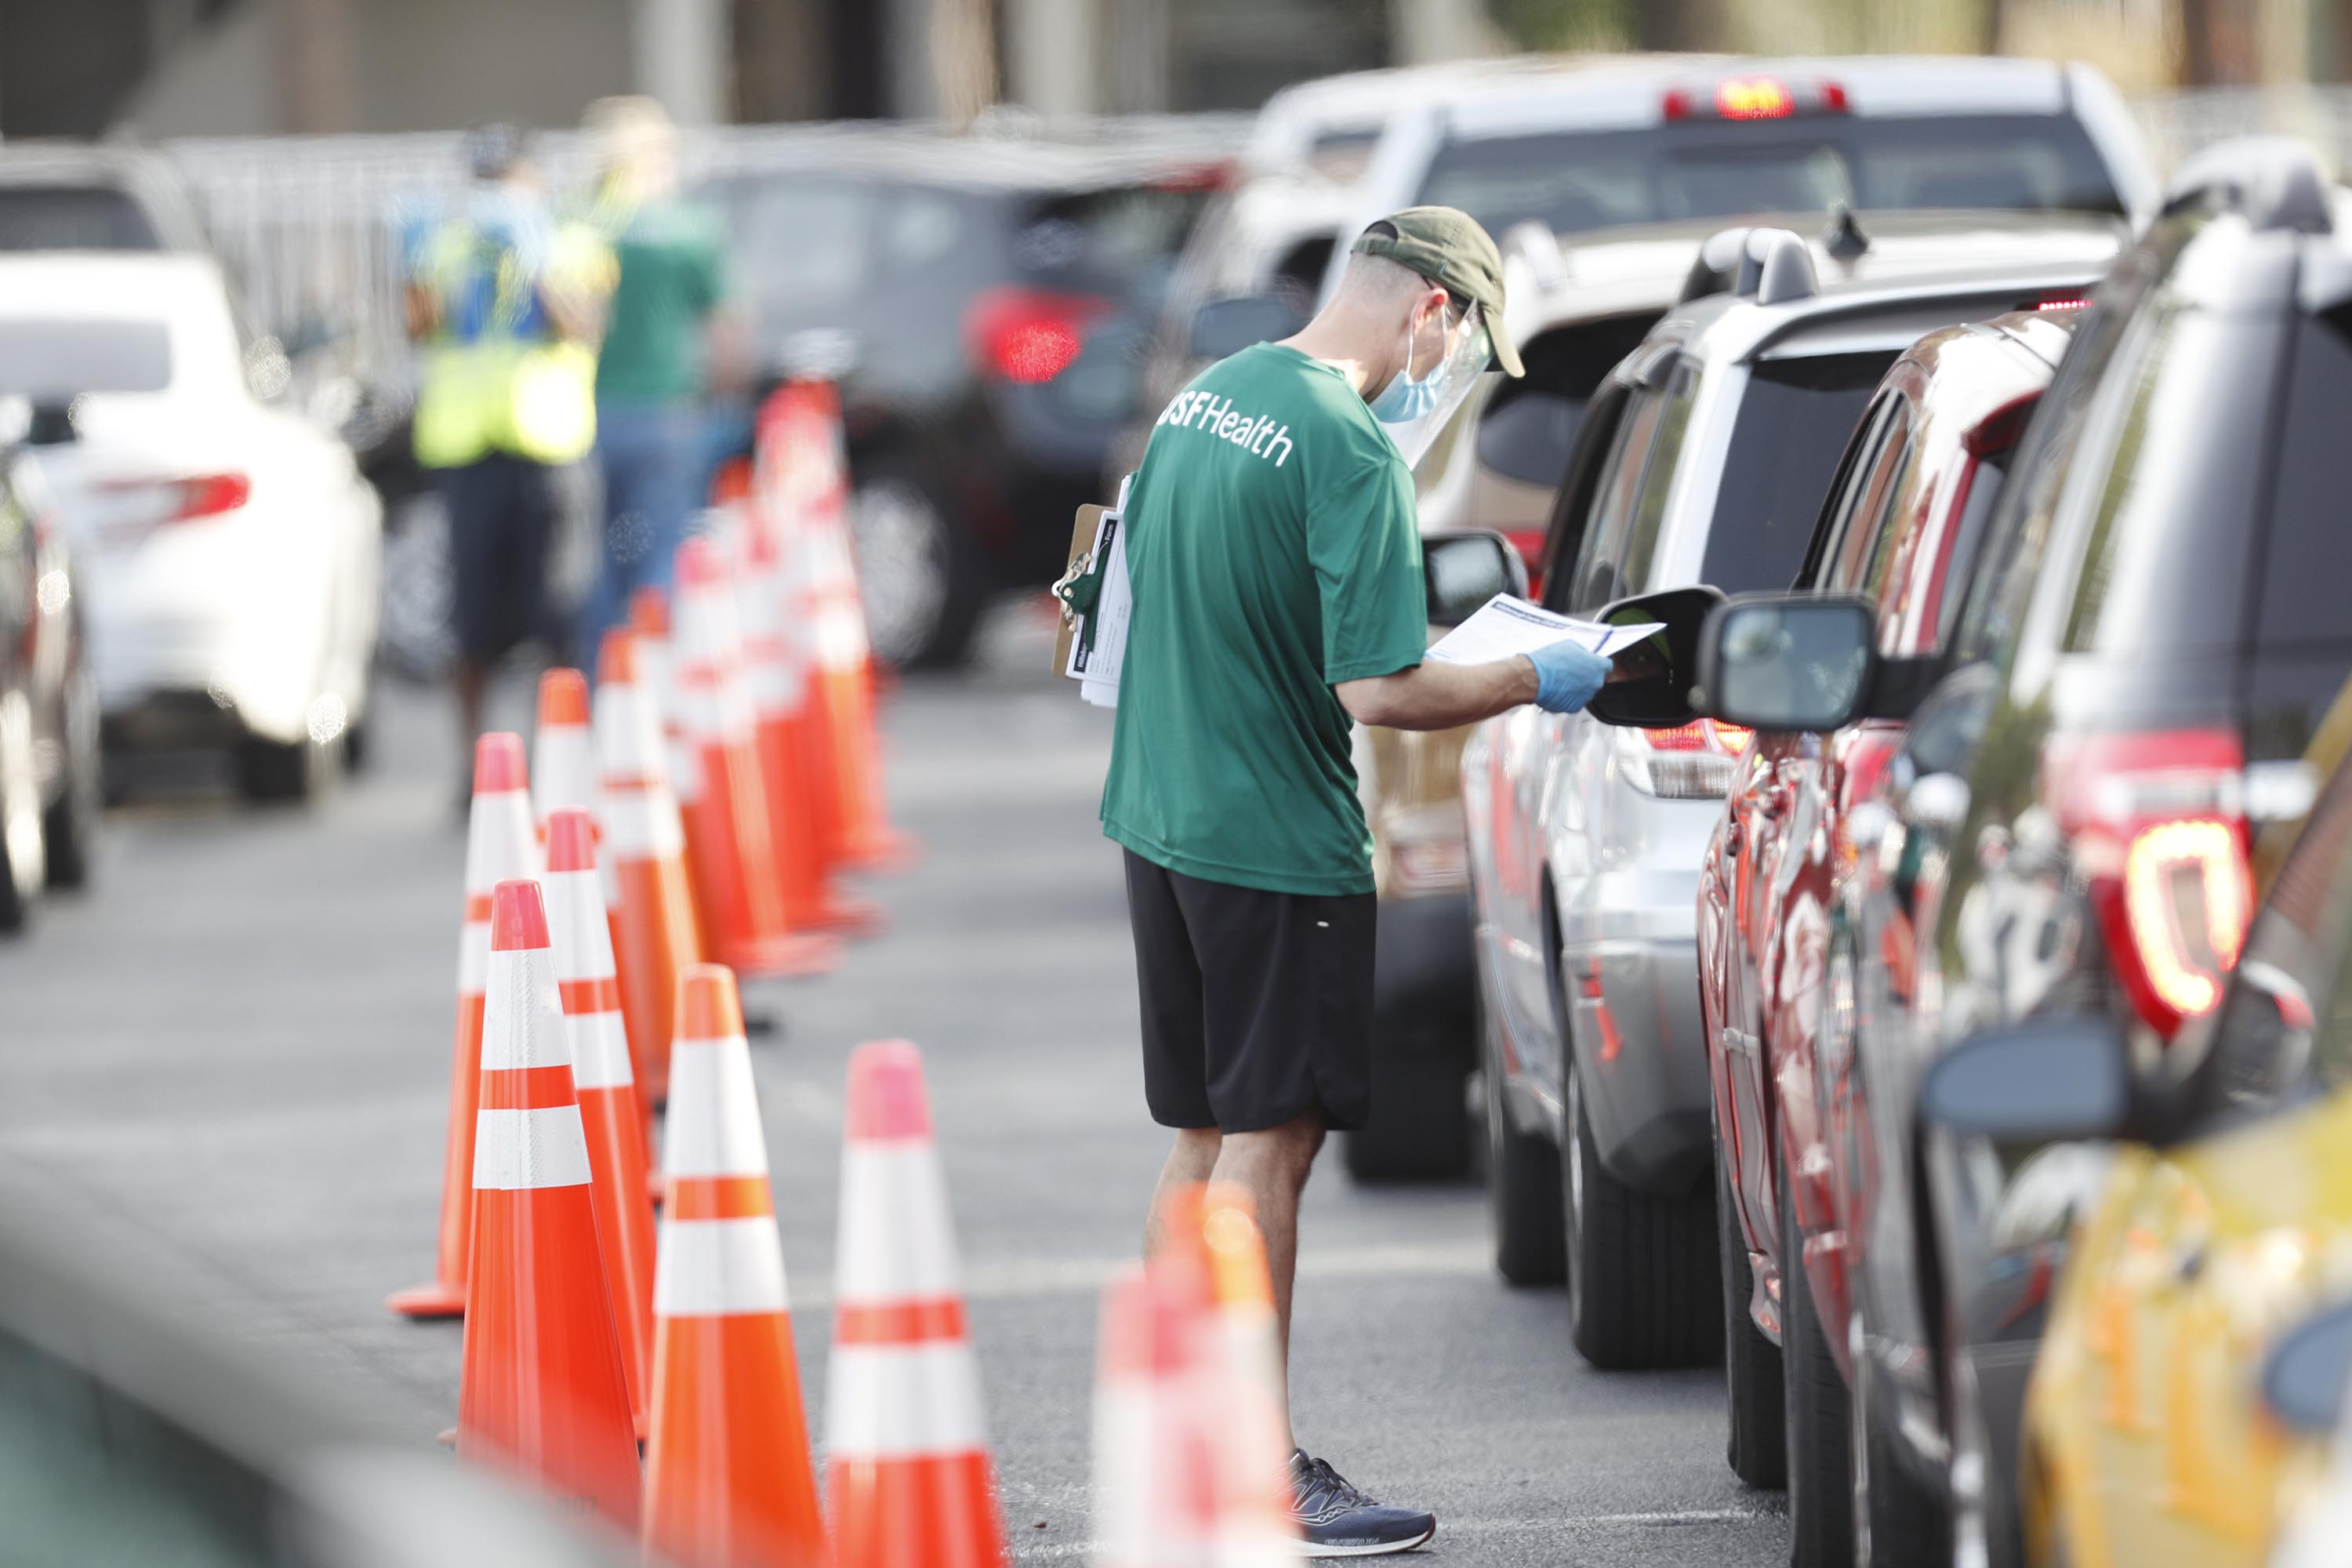 A University of South Florida (USF) Health administrator talks to a driver before they receive a coronavirus test in Tampa, Florida, on June 25.